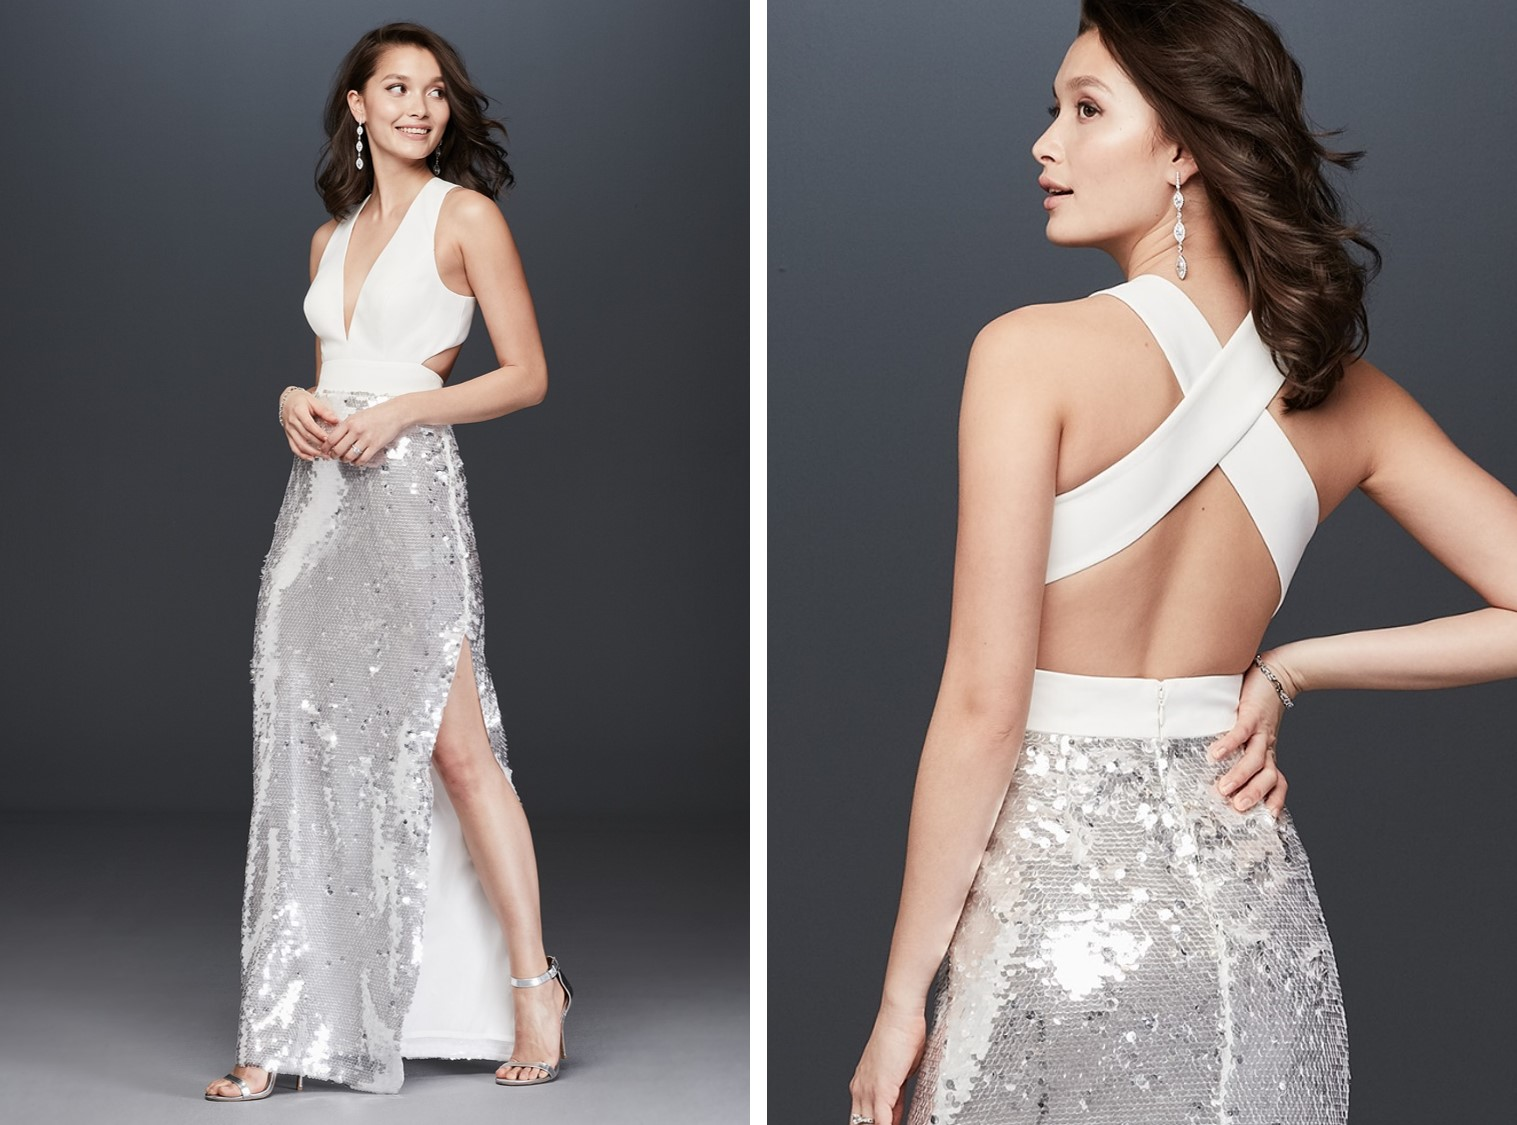 Bride in long dress with silver sequin skirt and criss-cross back | After-party dresses from David's Bridal